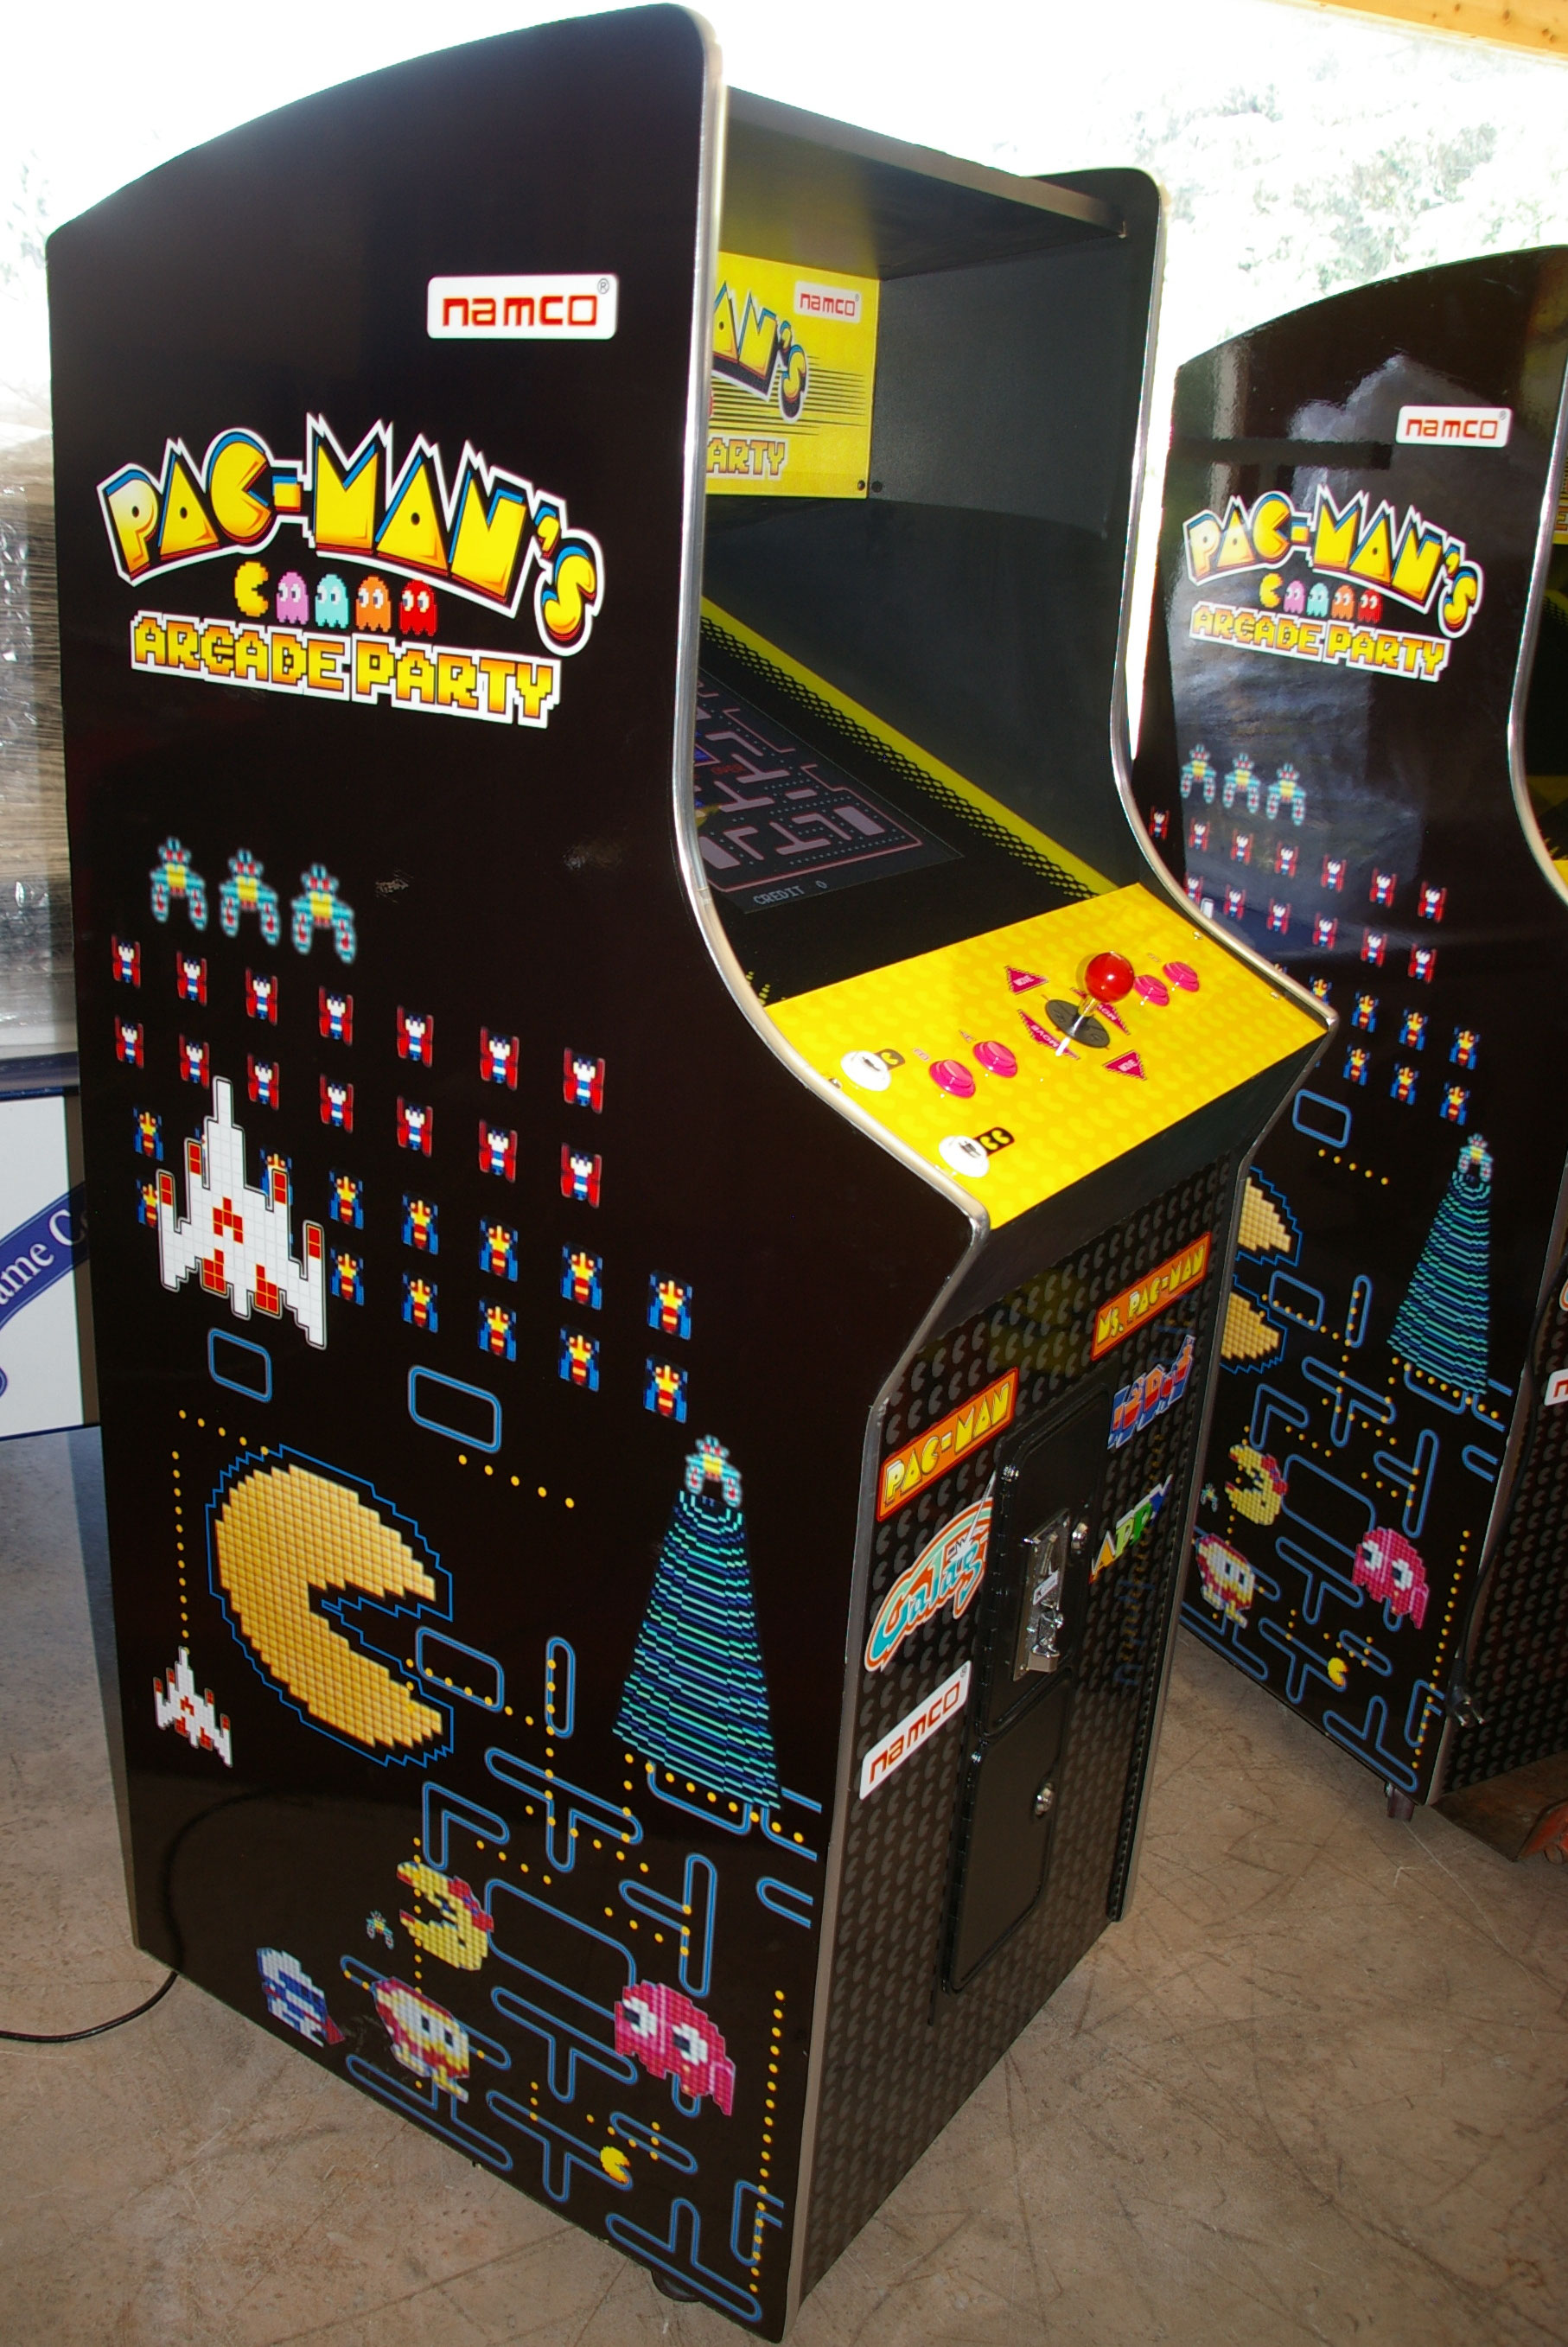 meuble pac man 39 s arcade party 60 jeux planete jeux vente de jeux flippers billards arcades. Black Bedroom Furniture Sets. Home Design Ideas